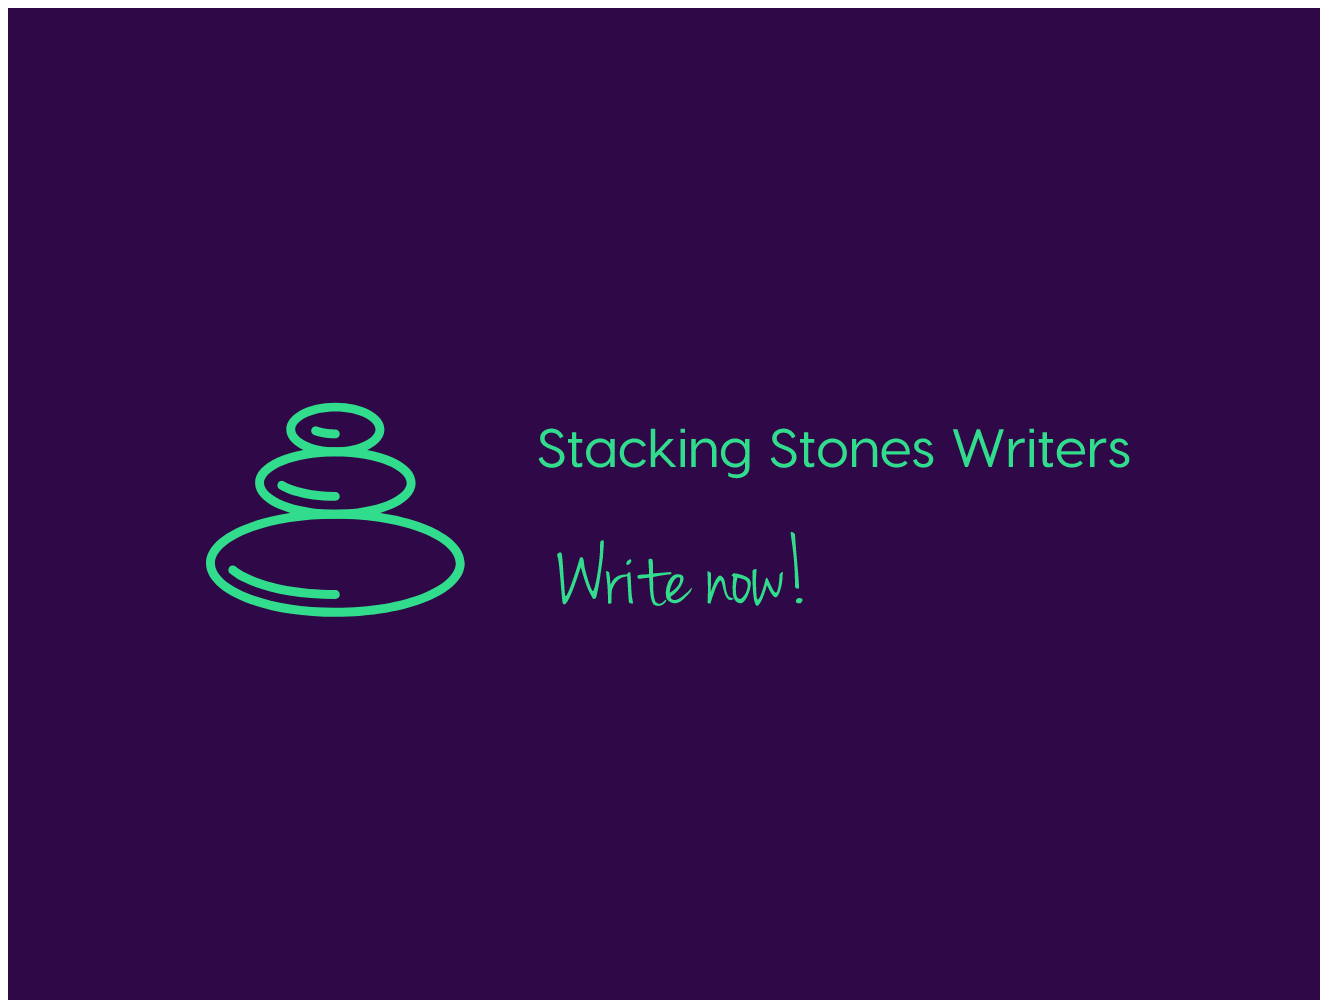 Stacking Stones Writers logo